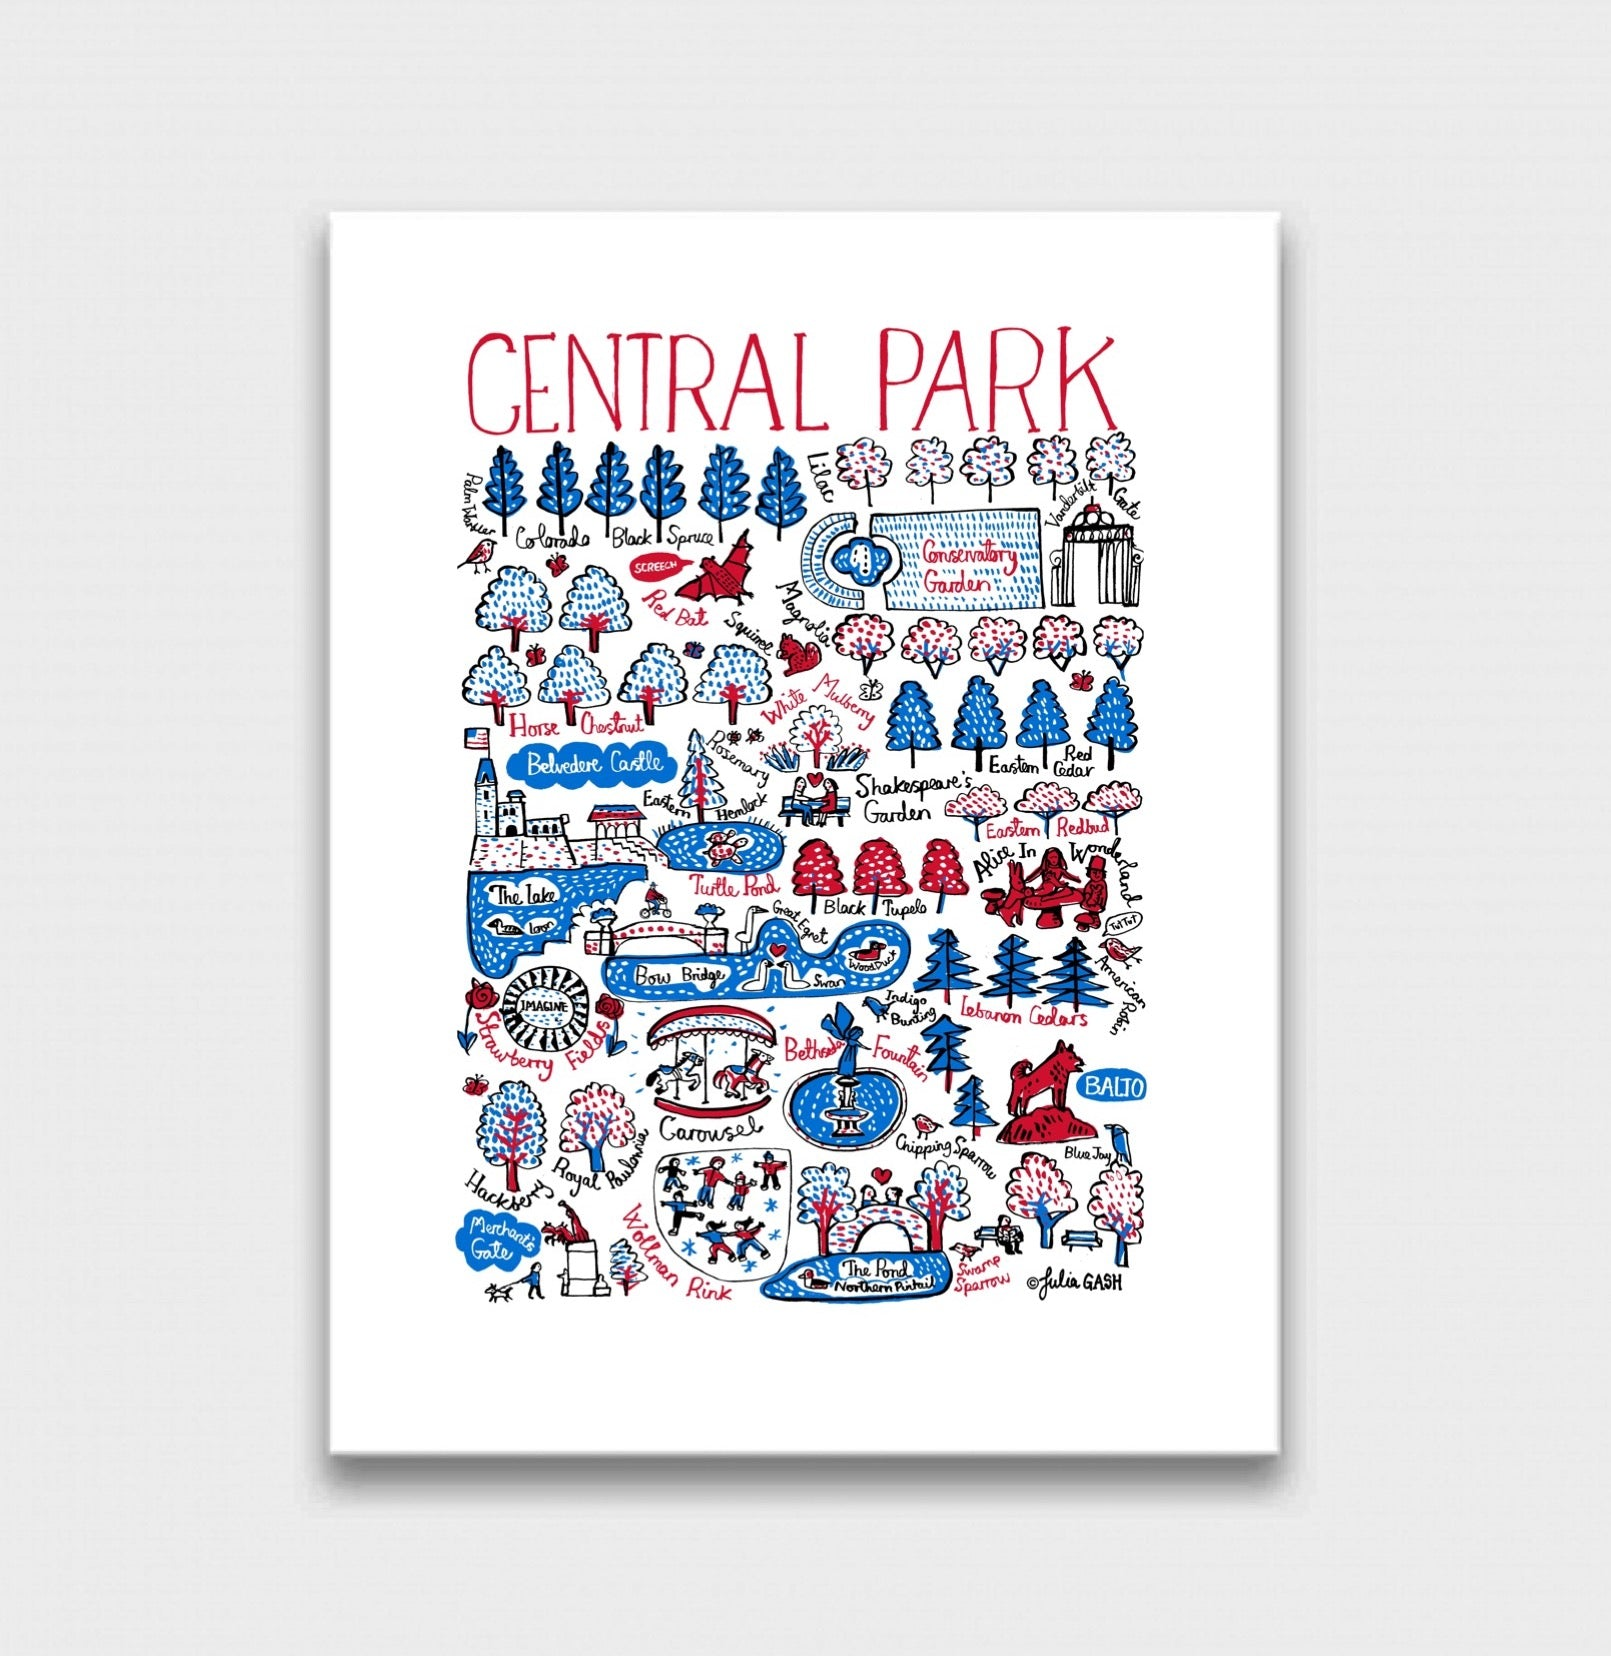 Central Park Art Print - Julia Gash